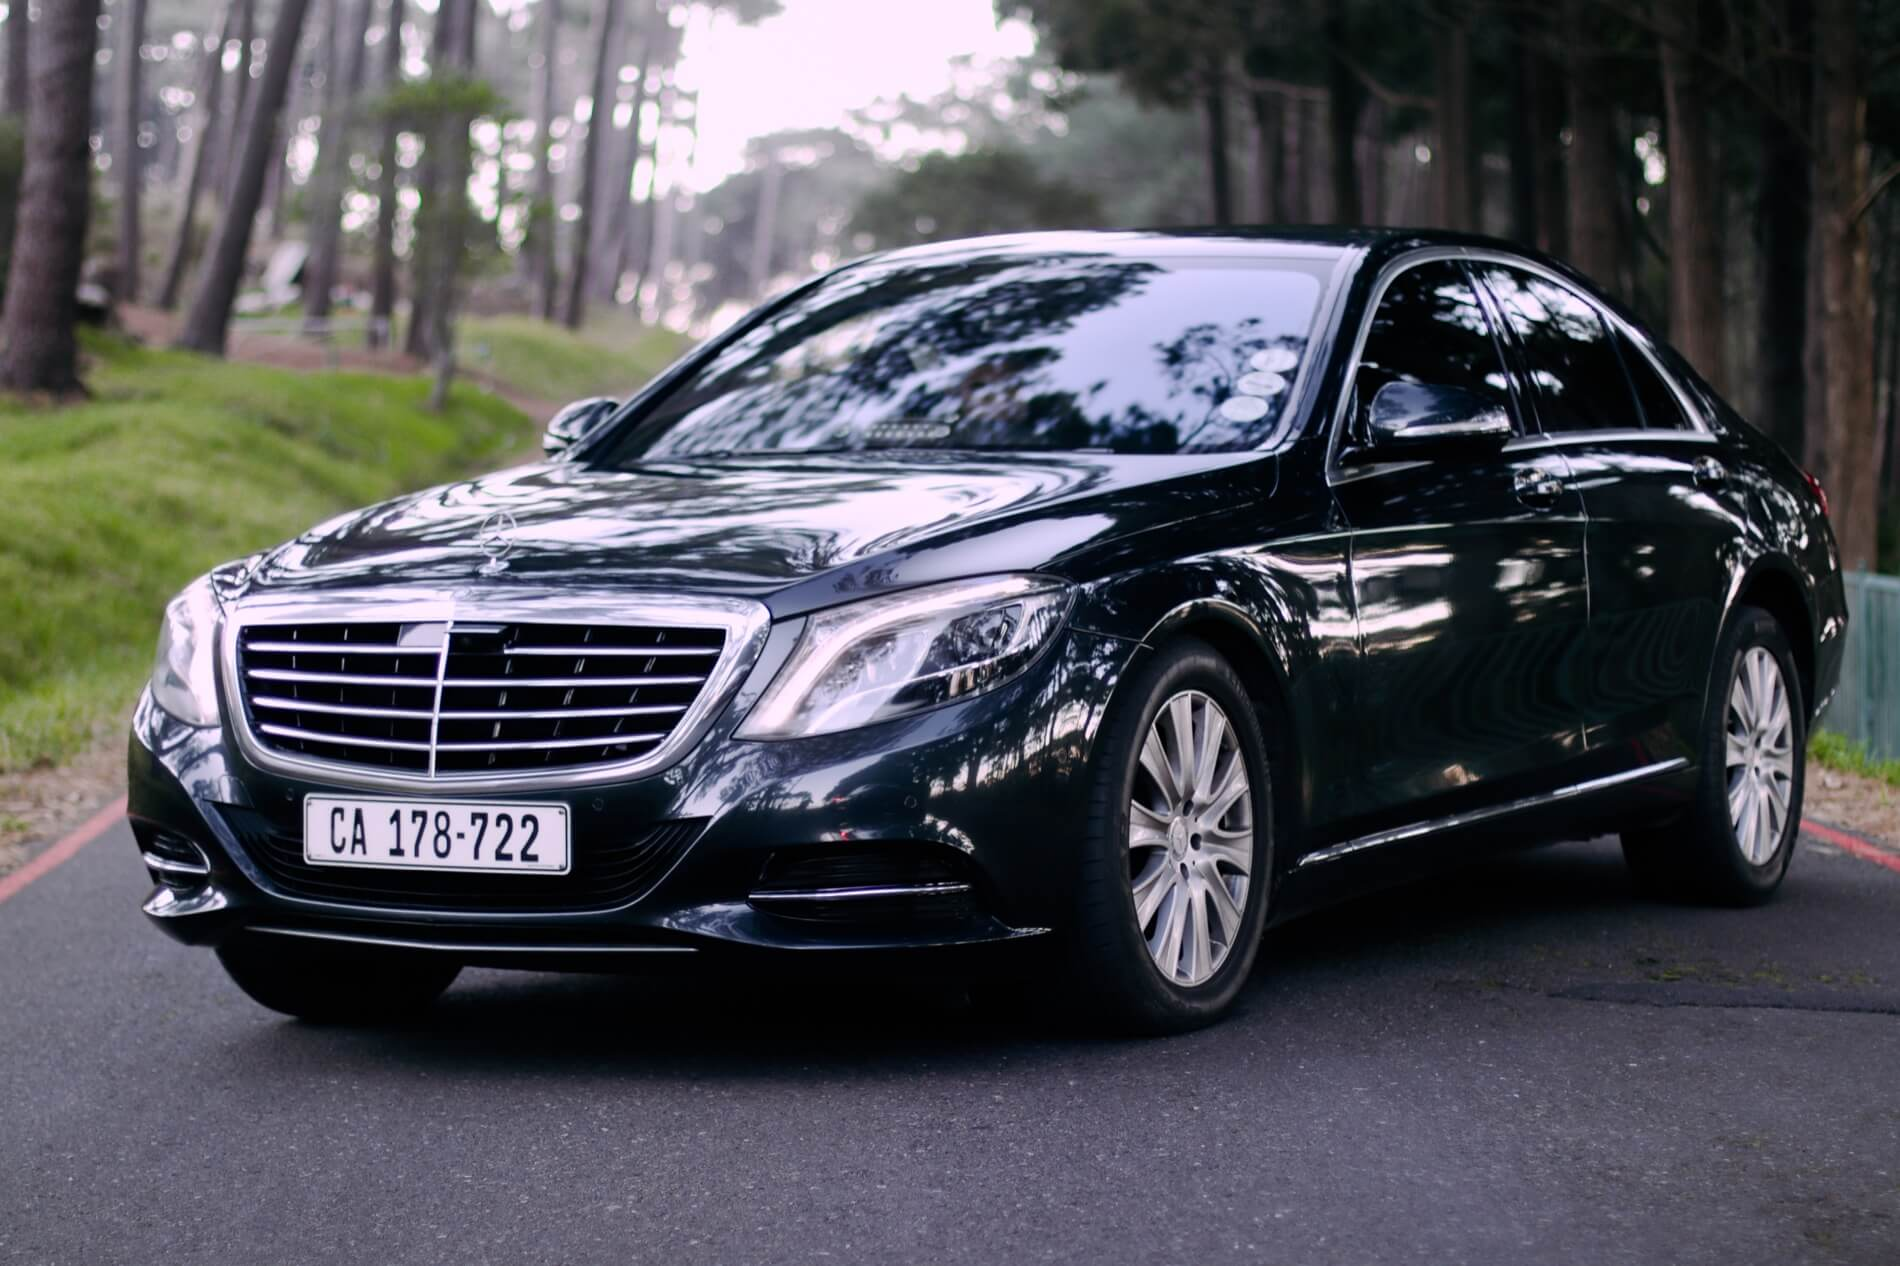 IMG_0540-SOHO-VIP-Luxury-Chauffeurs-in-Cape-Town-South-Africa